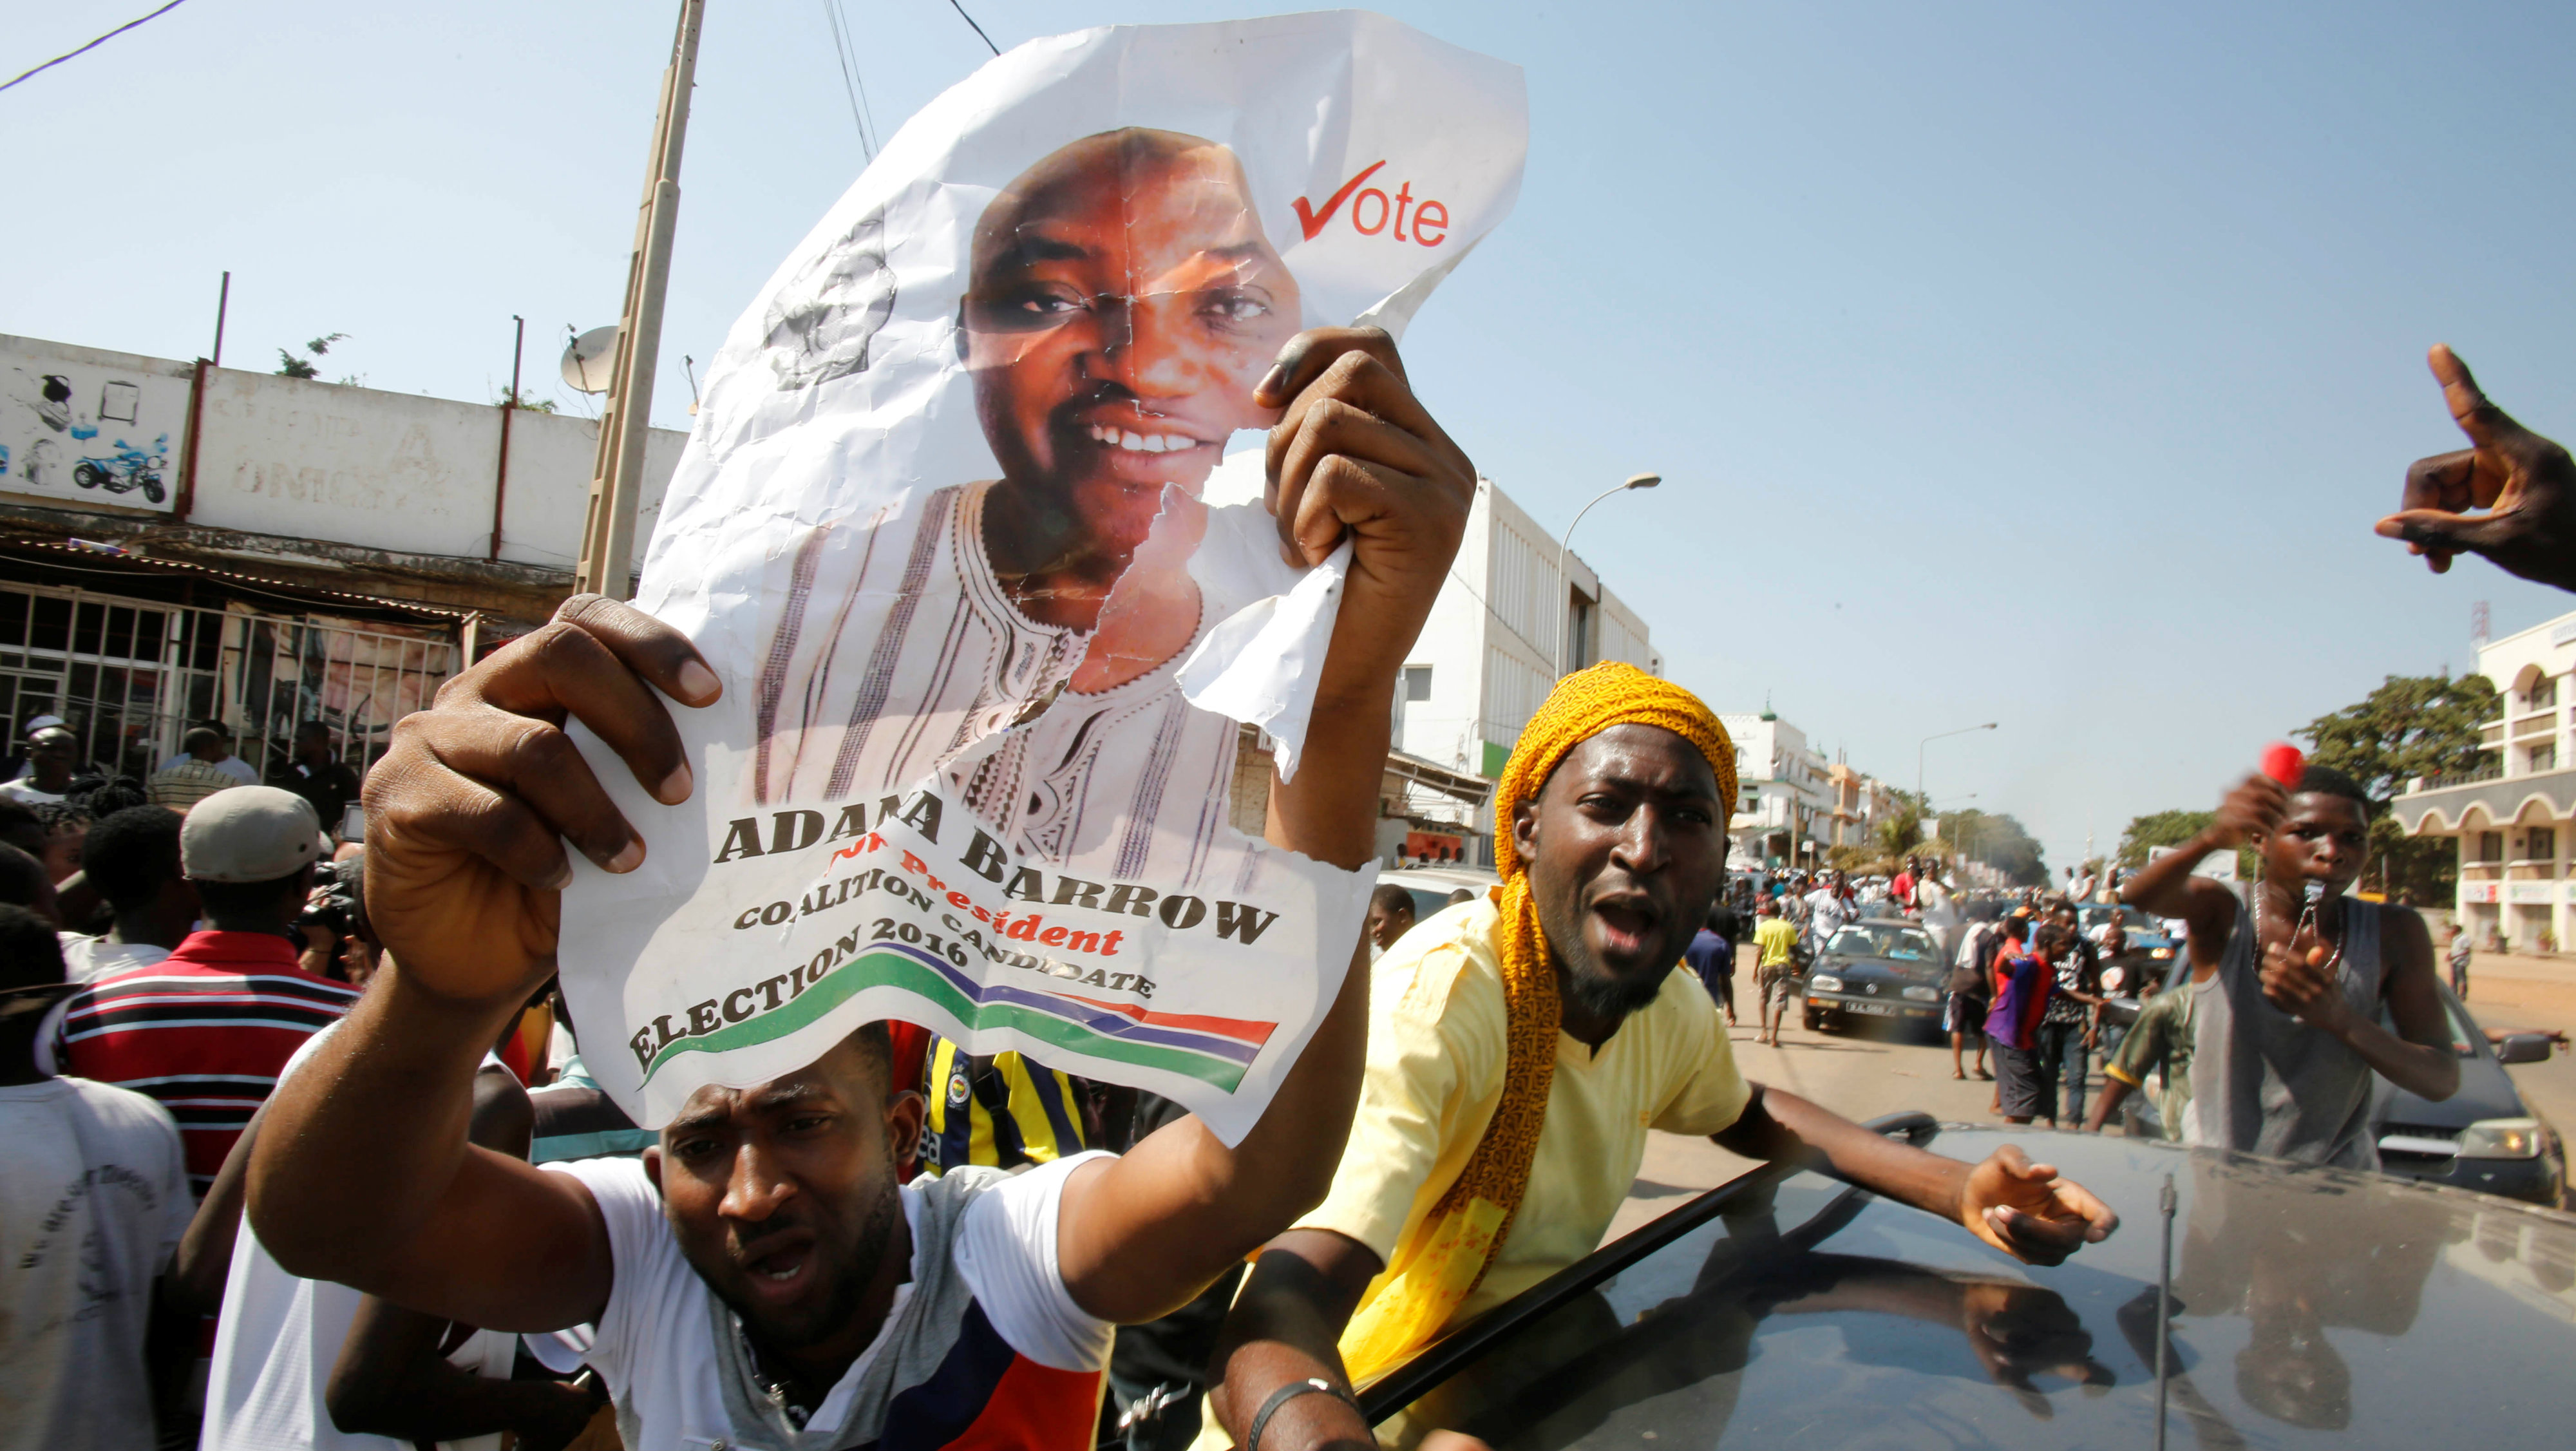 Supporters of president-elect Adama Barrow celebrate Barrow's election victory in Banjul, Gambia, December 2, 2016